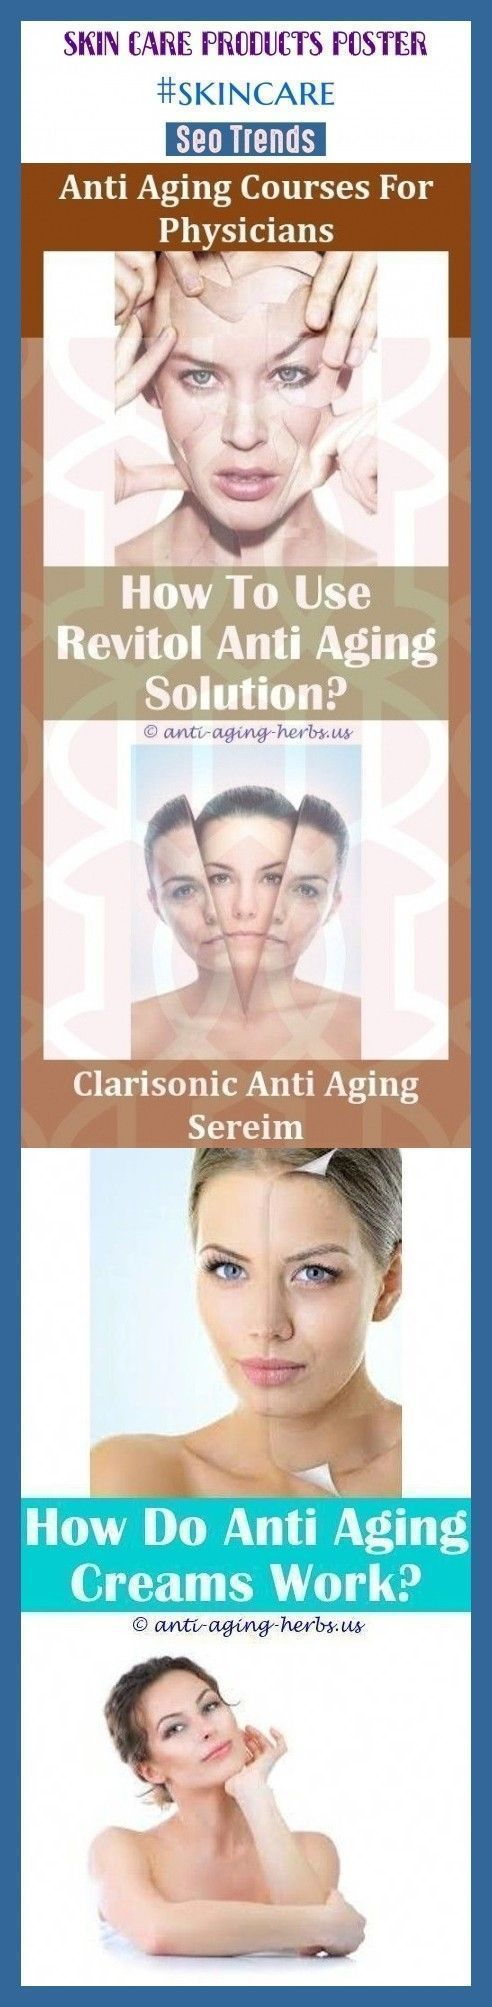 Skin Care Products Poster Skincare Niches Seo Keywords Beauty Skin Care Pr Beauty In 2020 Skin Care Moisturizer Affordable Skin Care Best Skin Care Routine